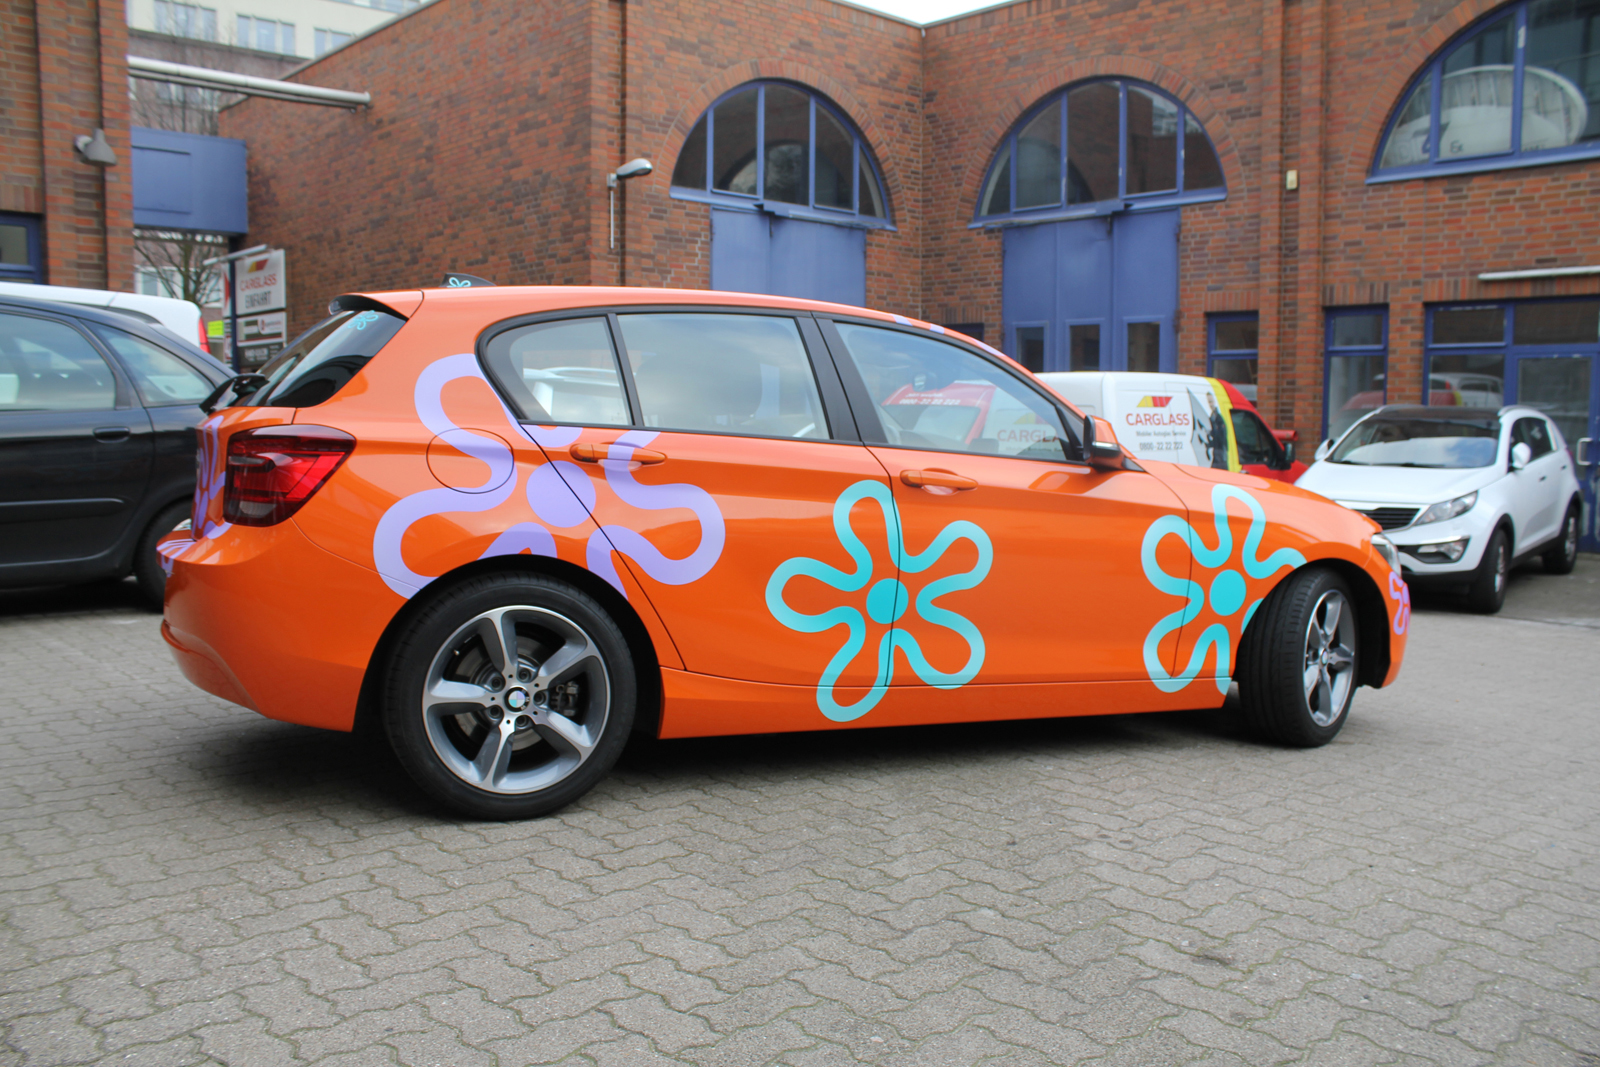 BMW_1ER_CAR-WRAPPING_ORANGE_GLANZ_FOLIE_BLUMEN_10